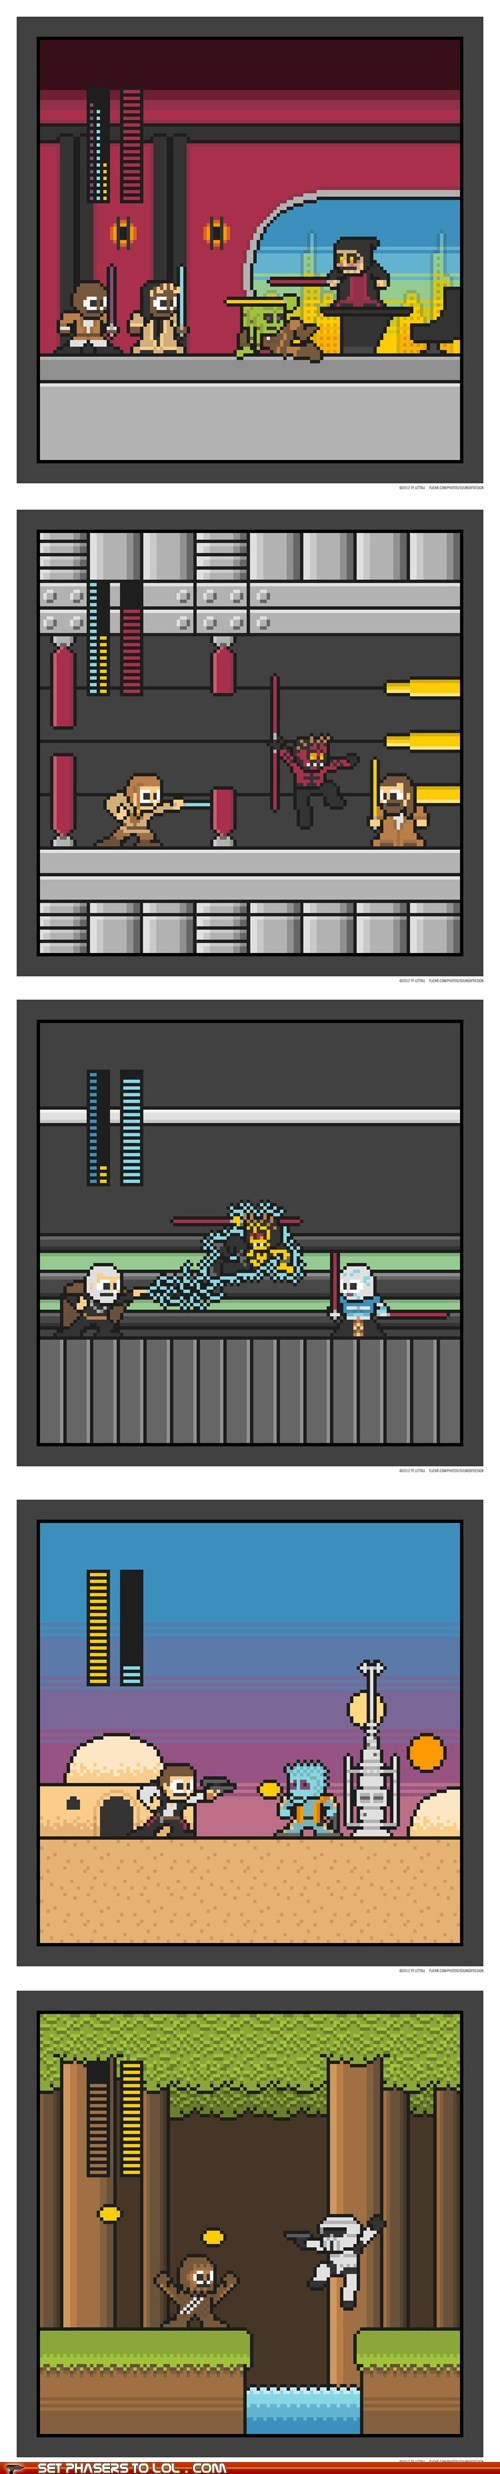 8 bit,boss battles,Fan Art,mashup,mega man,NES,star wars